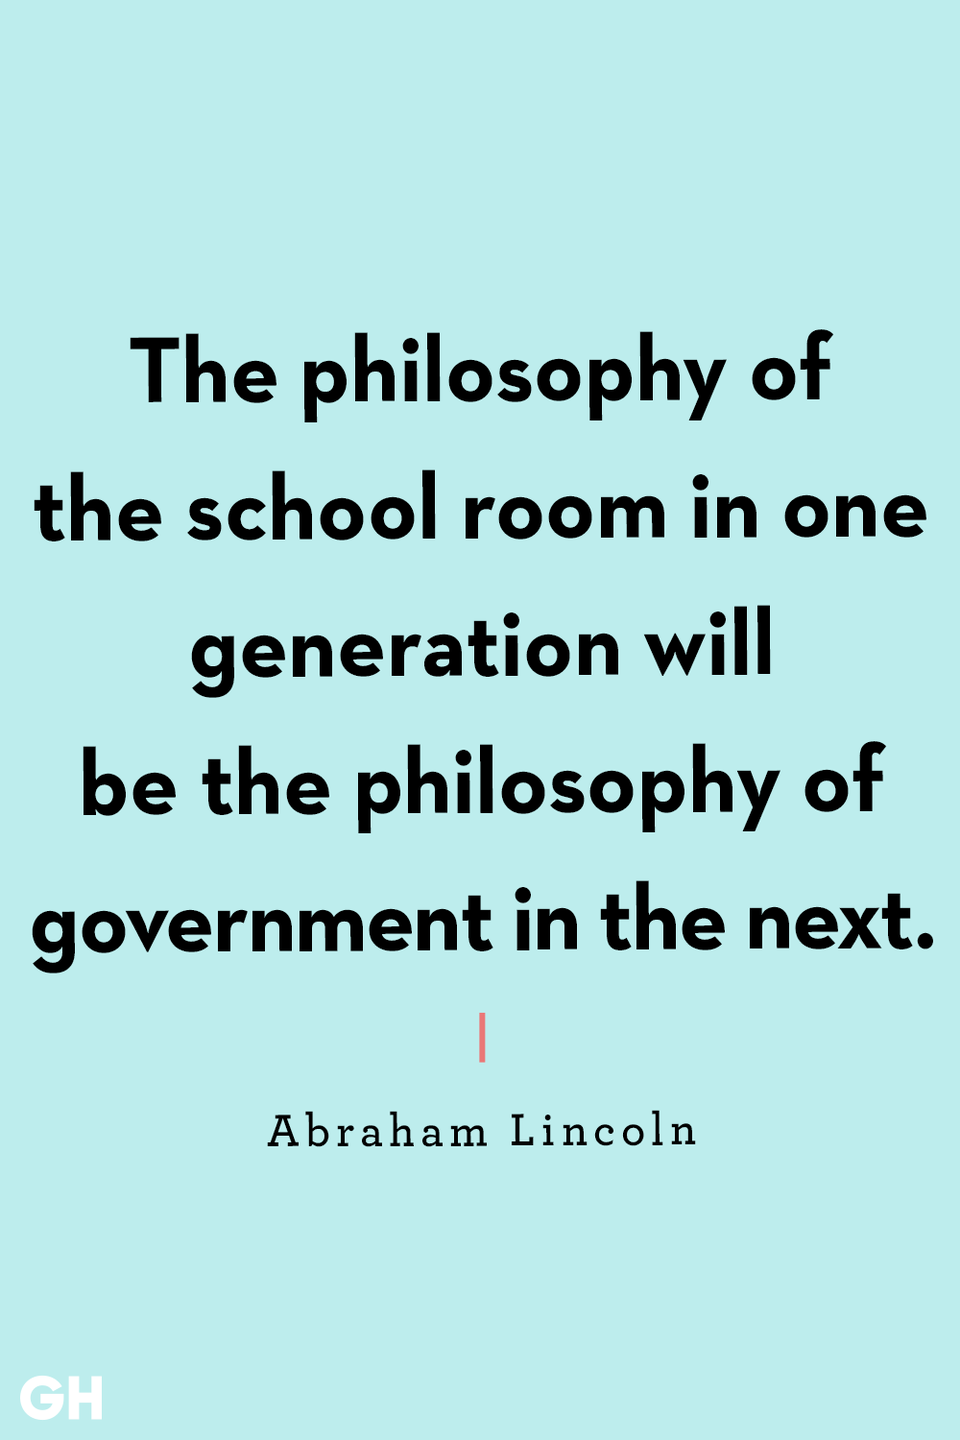 <p>The philosophy of the school room in one generation will be the philosophy of government in the next.</p>